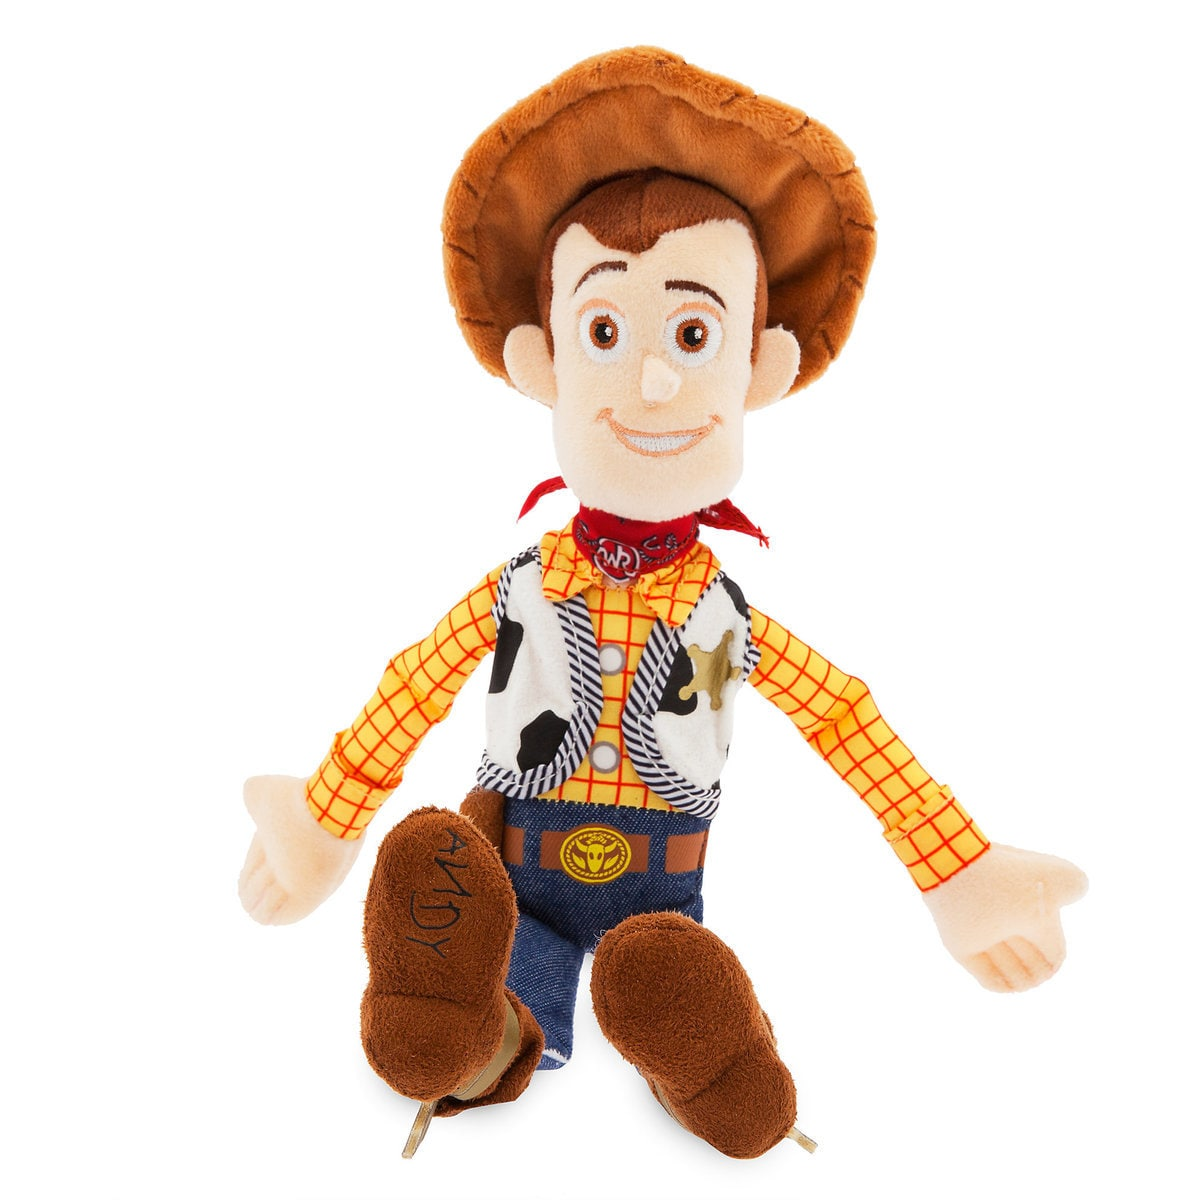 Disney Toy Story 4 Woody Mini Bean Bag Plush New With Tags